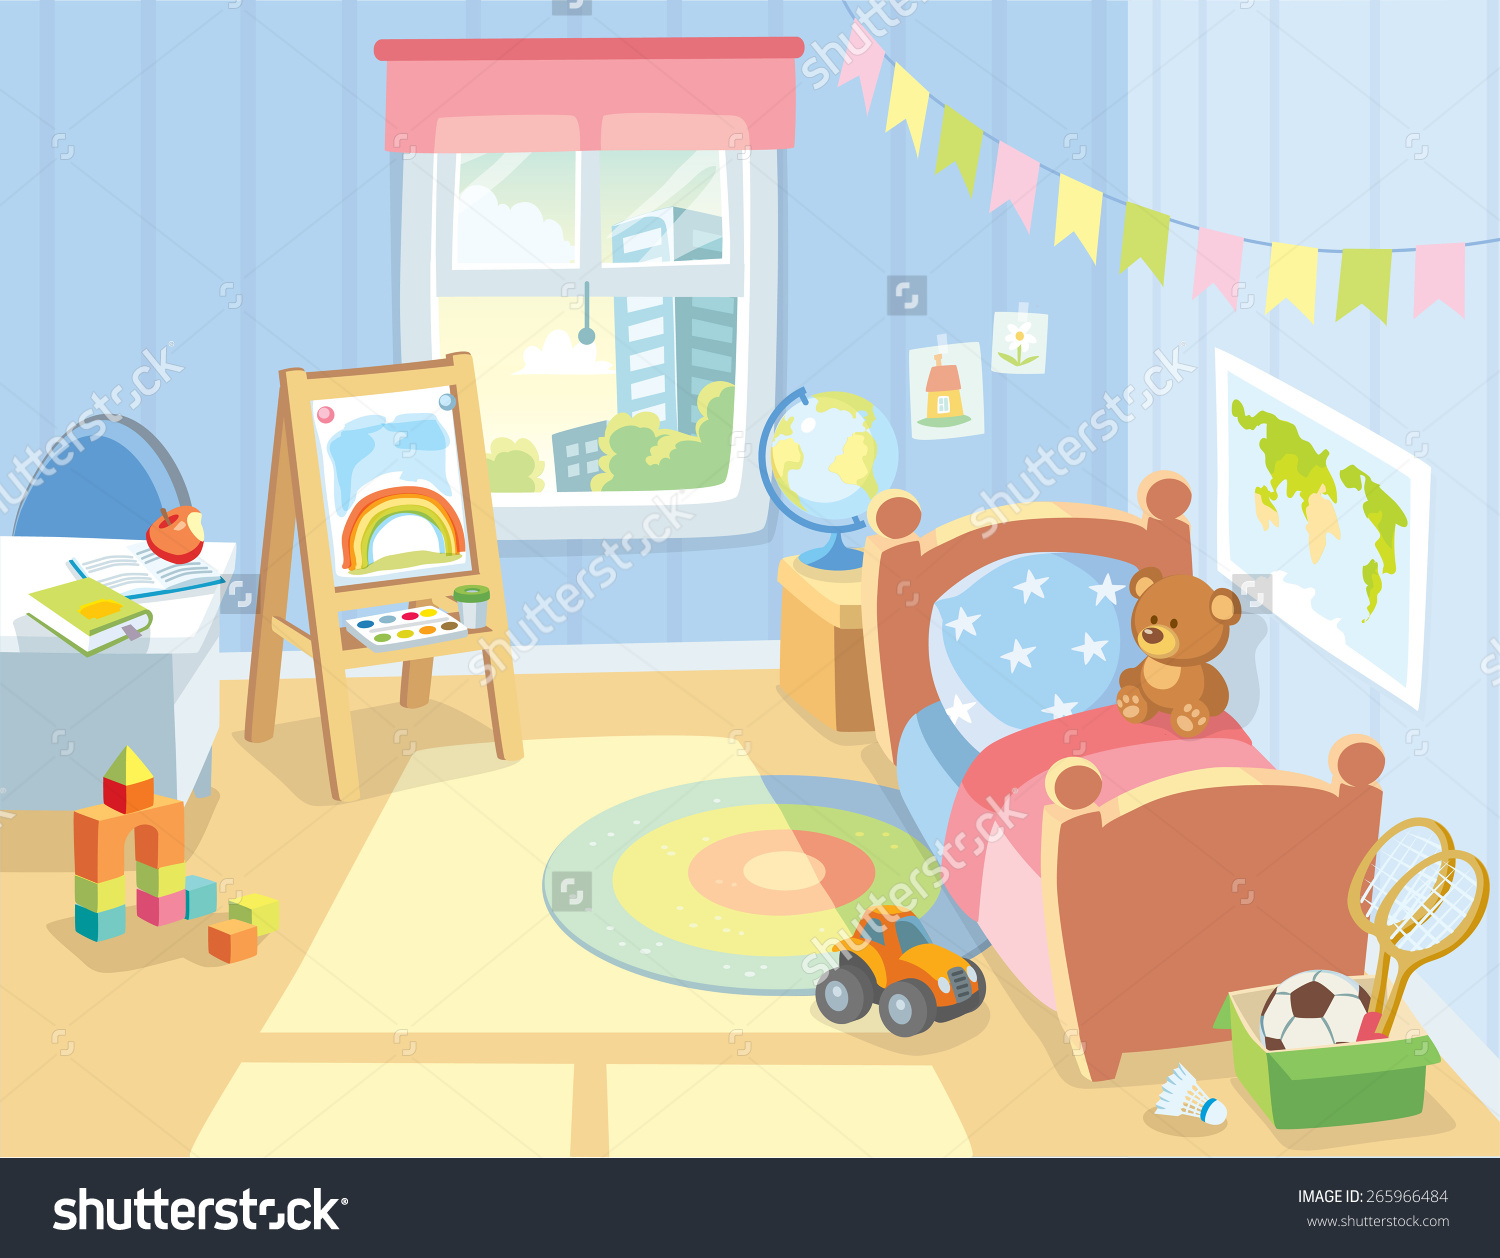 Children's room clipart - Clipground